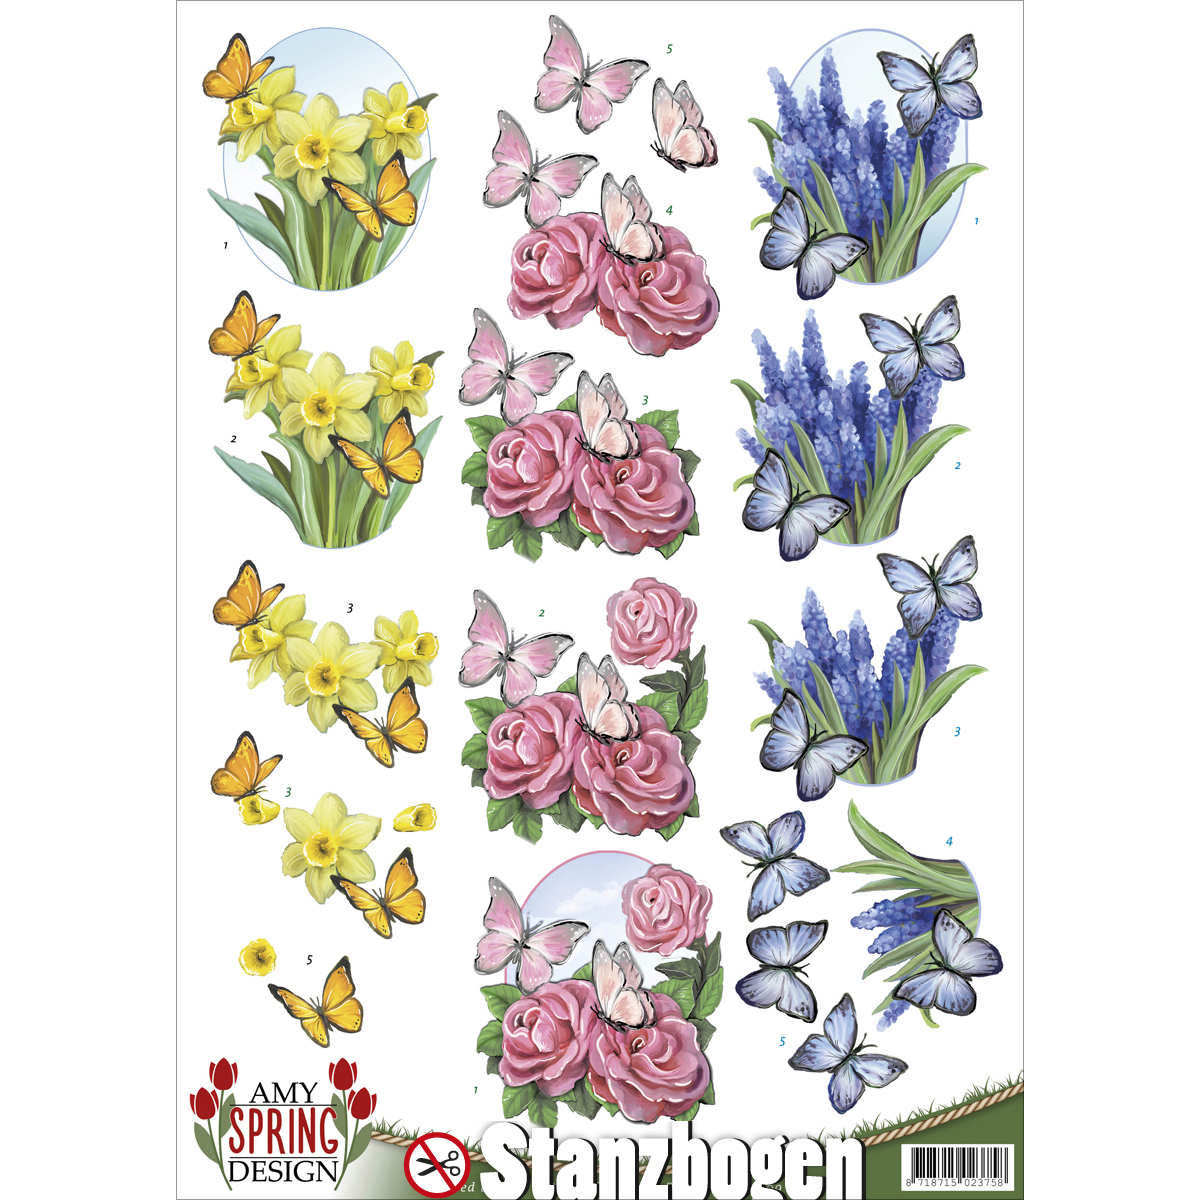 Find It Amy Design Spring Punchout Sheet-Flowers & Butterflies